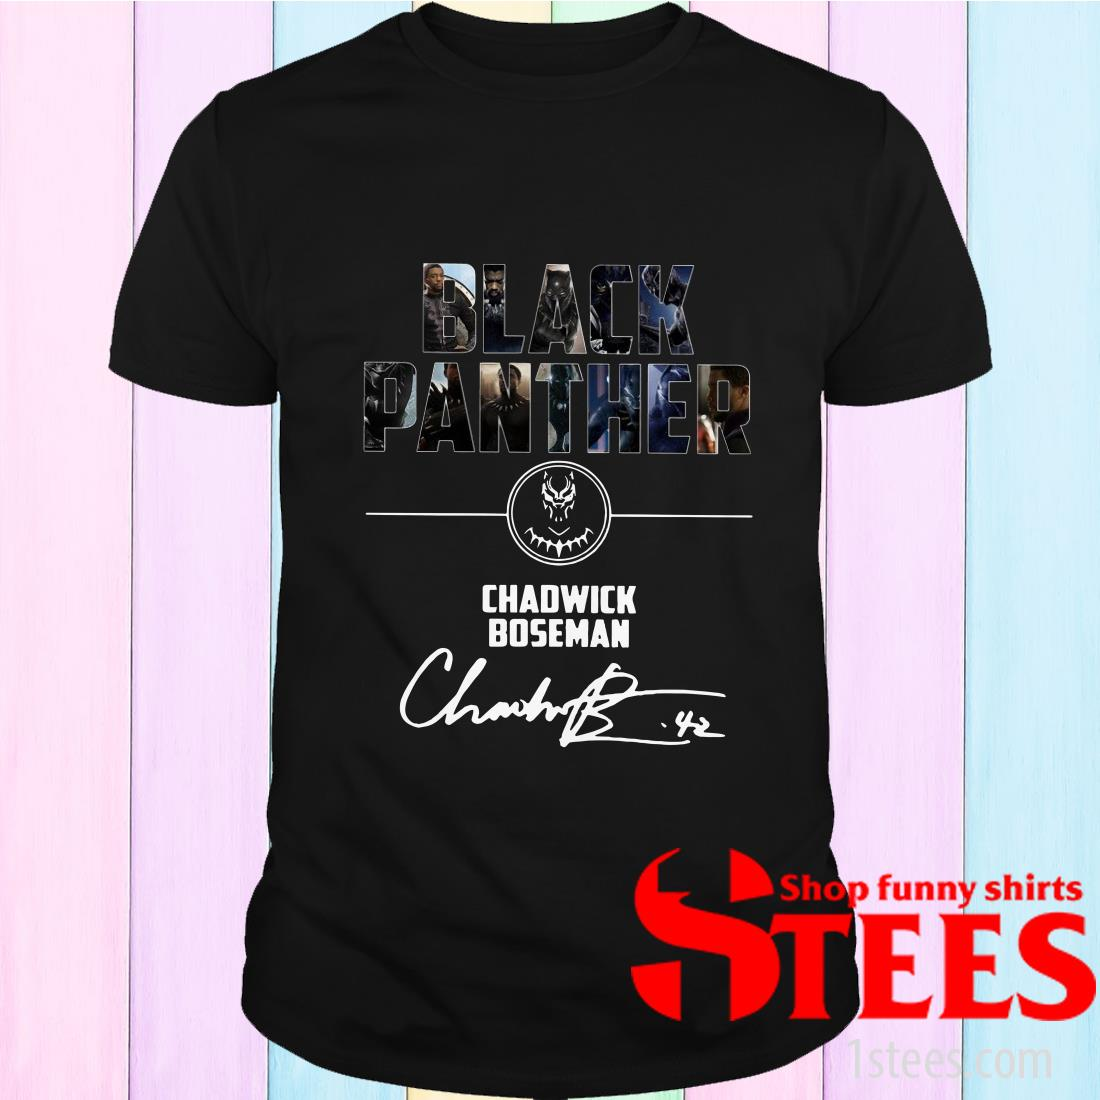 Black Panther Chadwick Boseman Signature T-Shirt